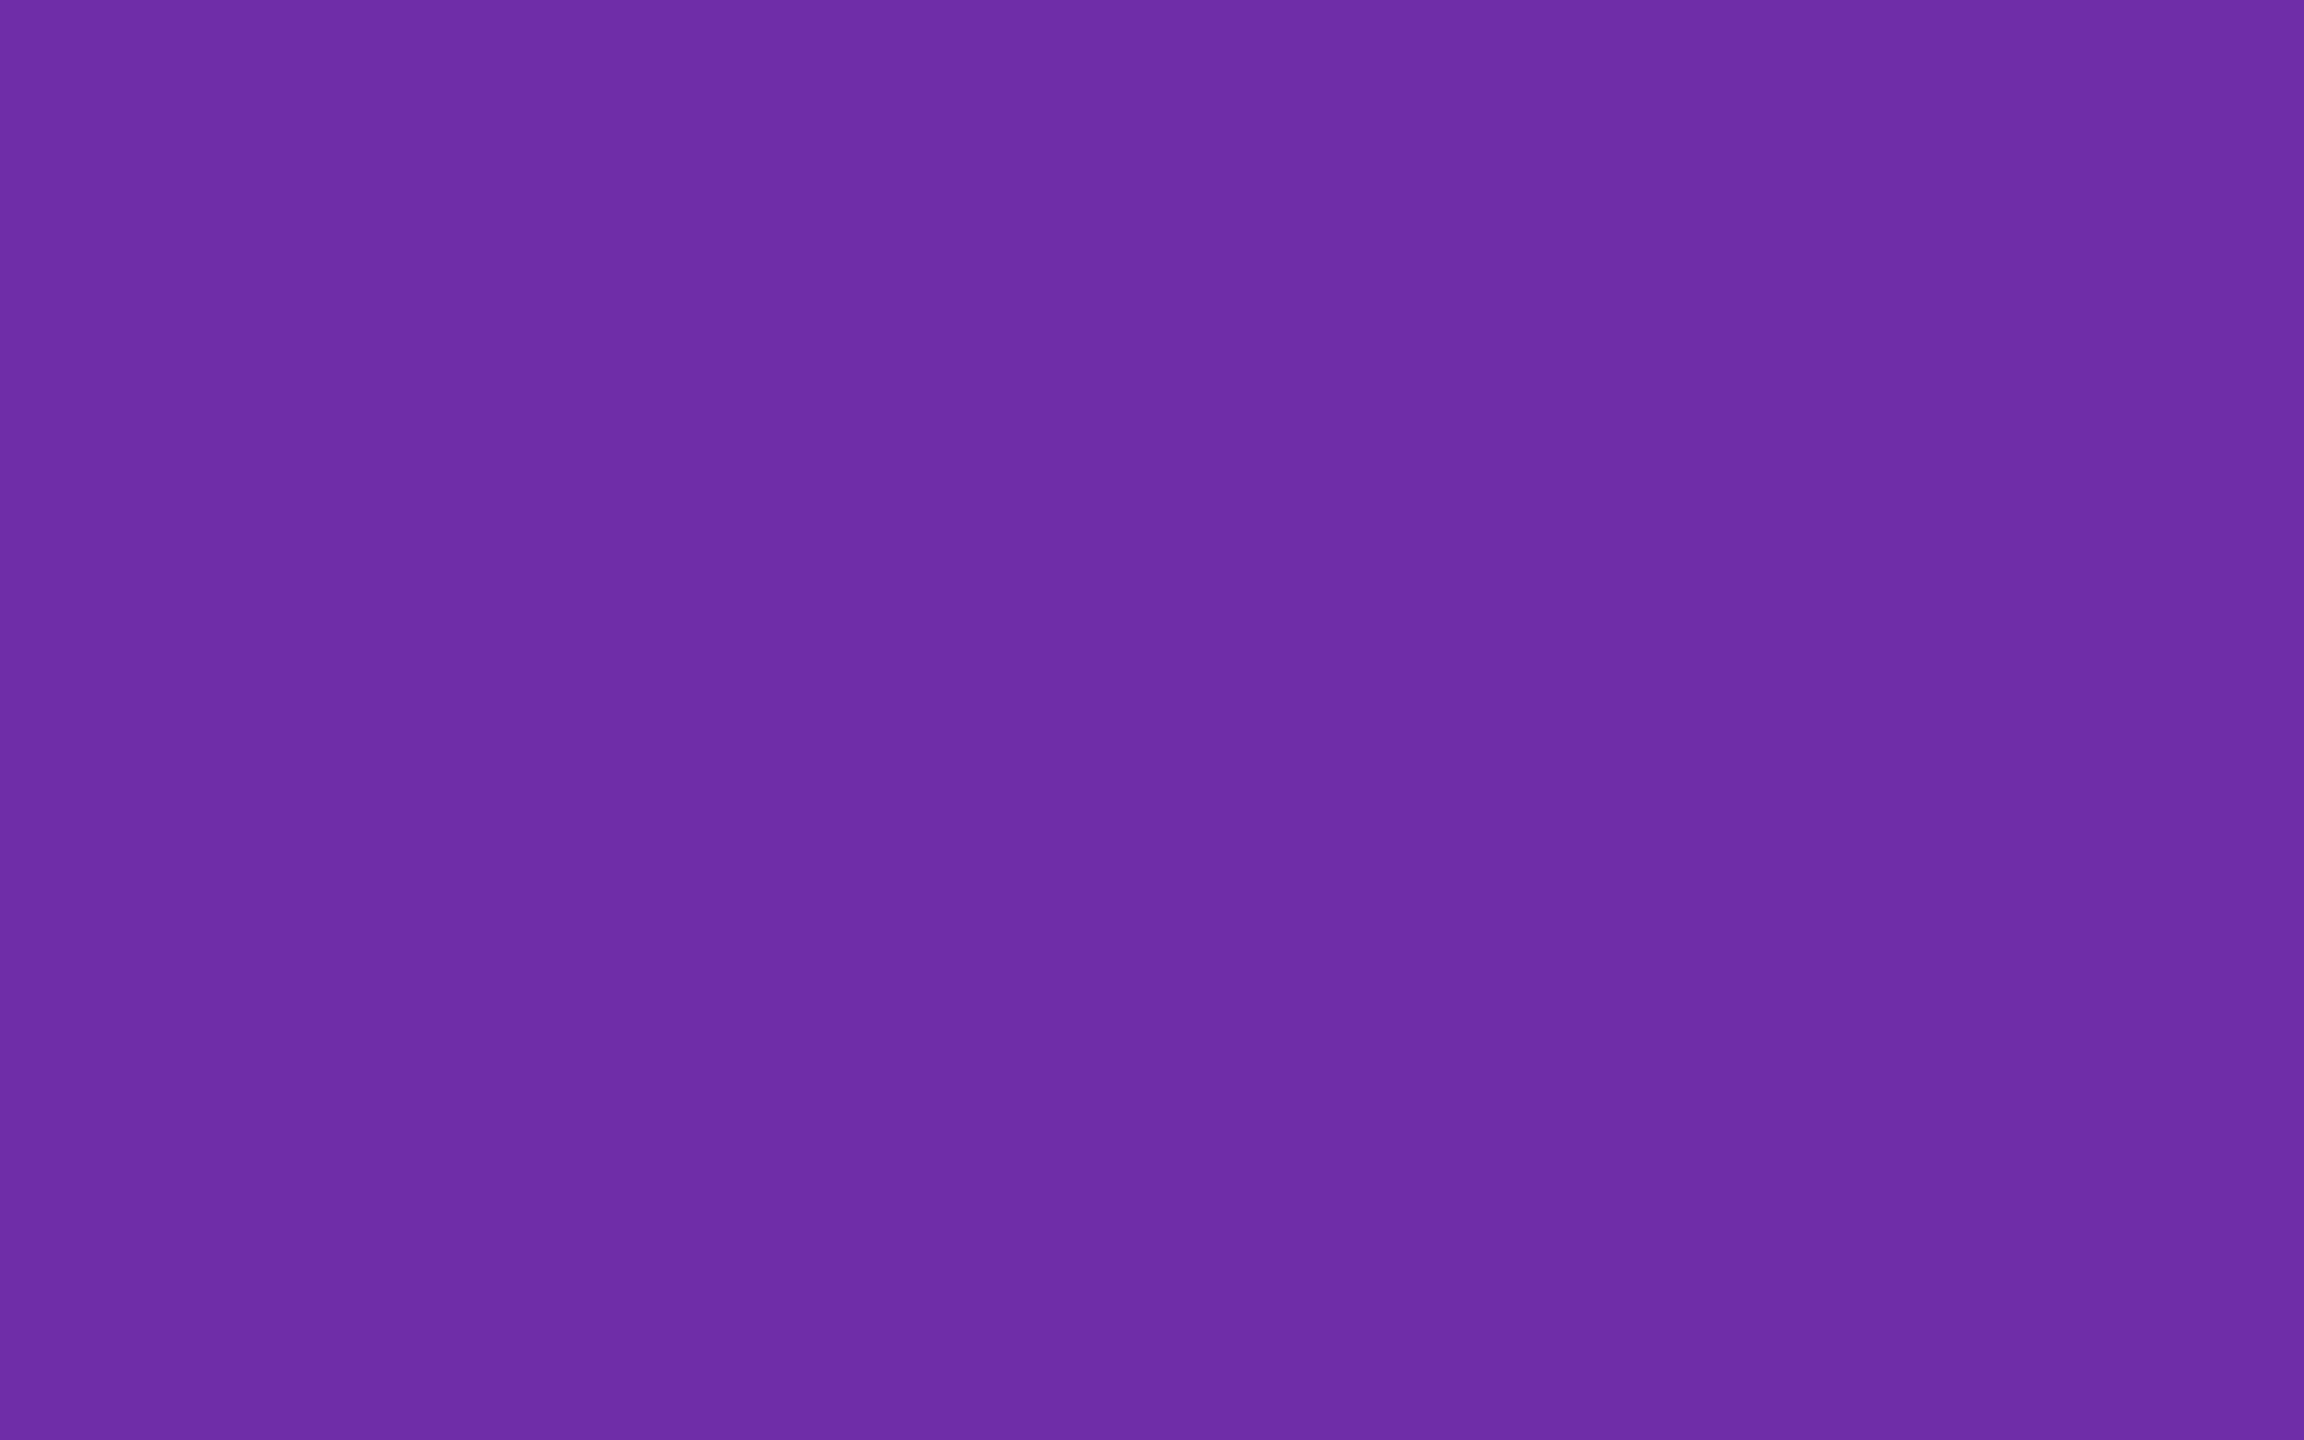 2304x1440 Grape Solid Color Background